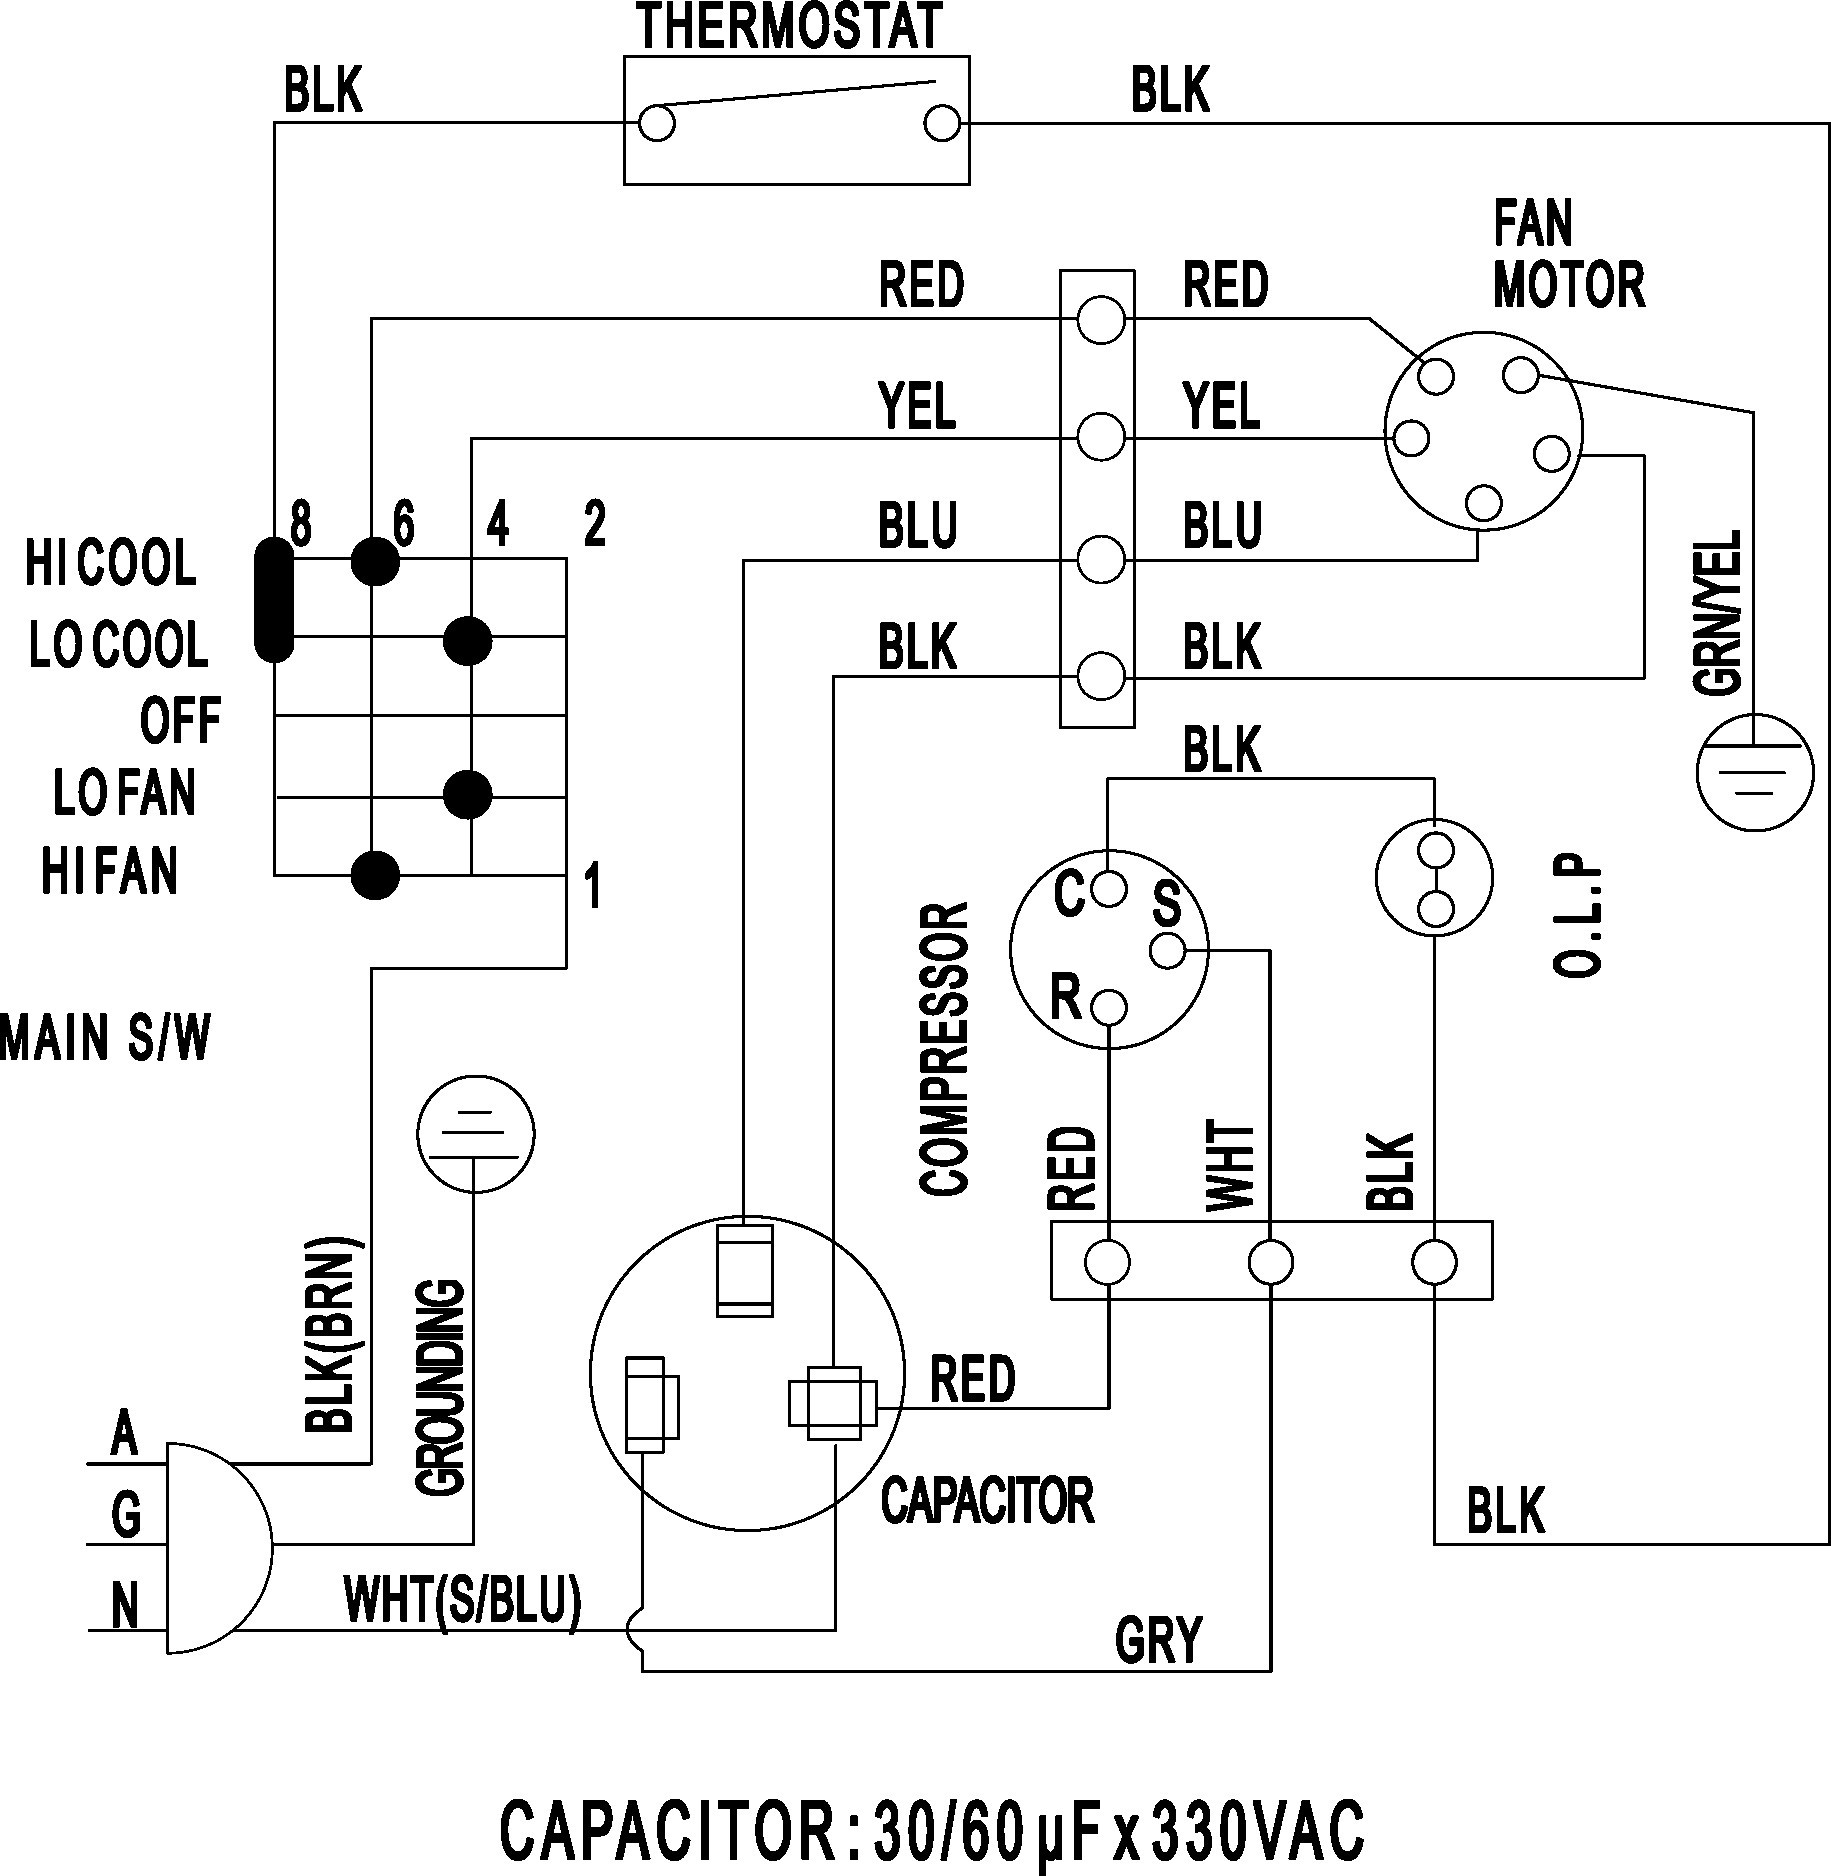 york heating and air conditioning wiring diagrams auto diagram program conditioner image